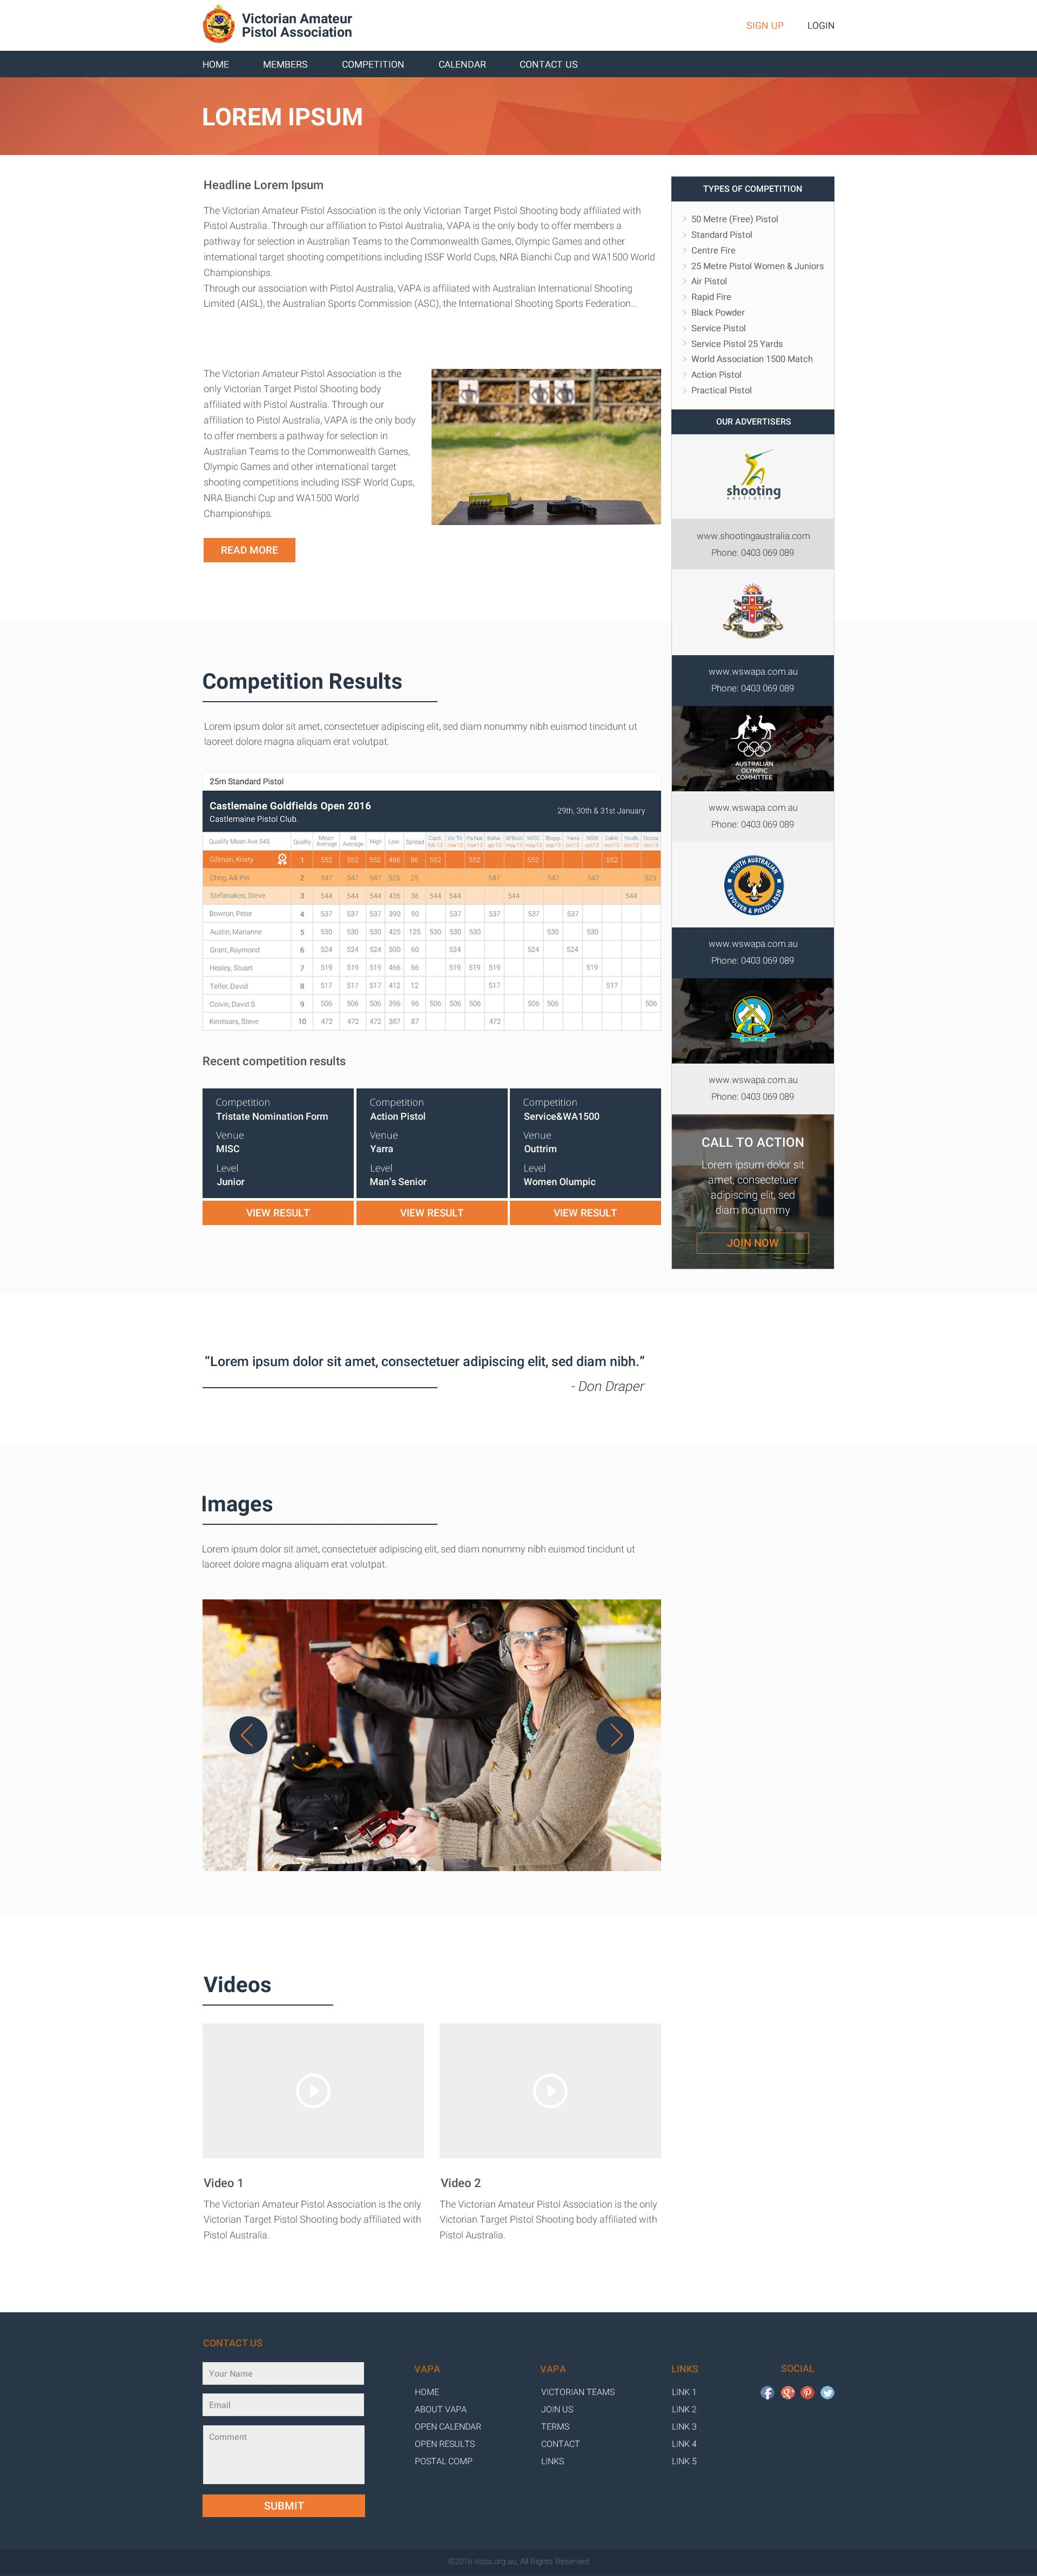 Unique Contempory Sporting Website - Competitive Shooting